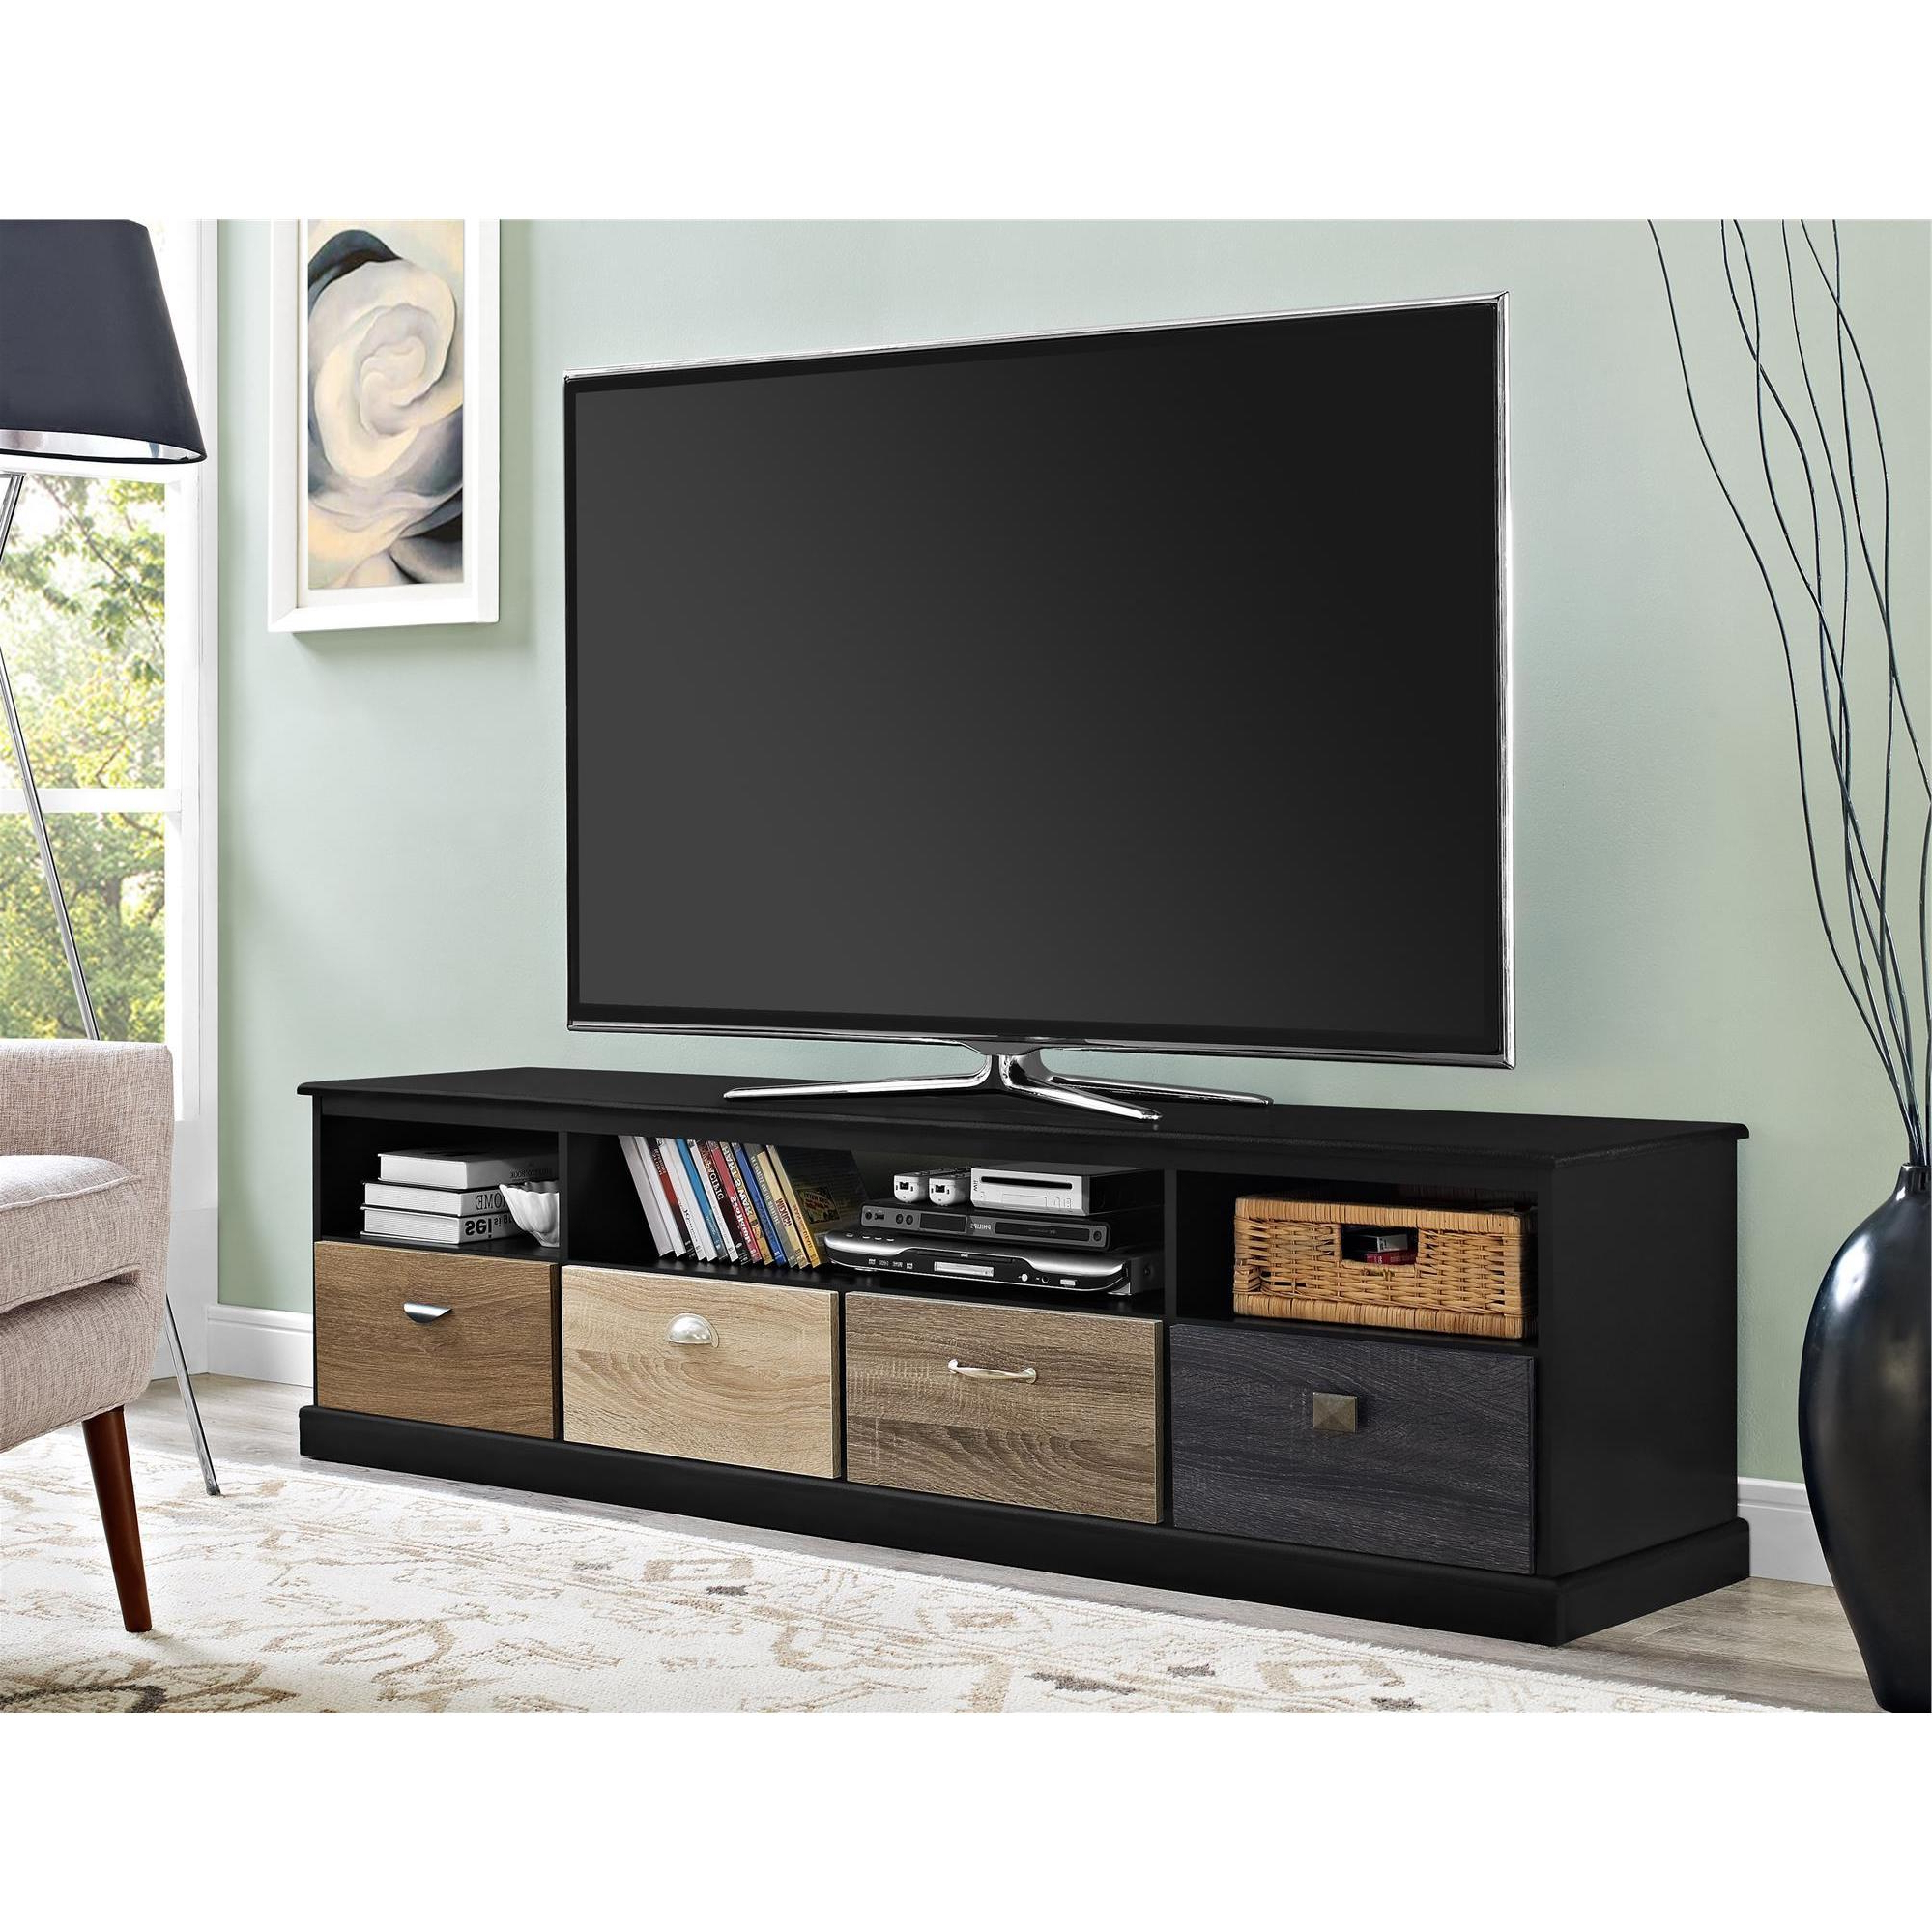 Shop Avenue Greene Mercer 65 Inch Black Tv Console With Multicolored In Most Current Kilian Grey 49 Inch Tv Stands (Gallery 10 of 20)